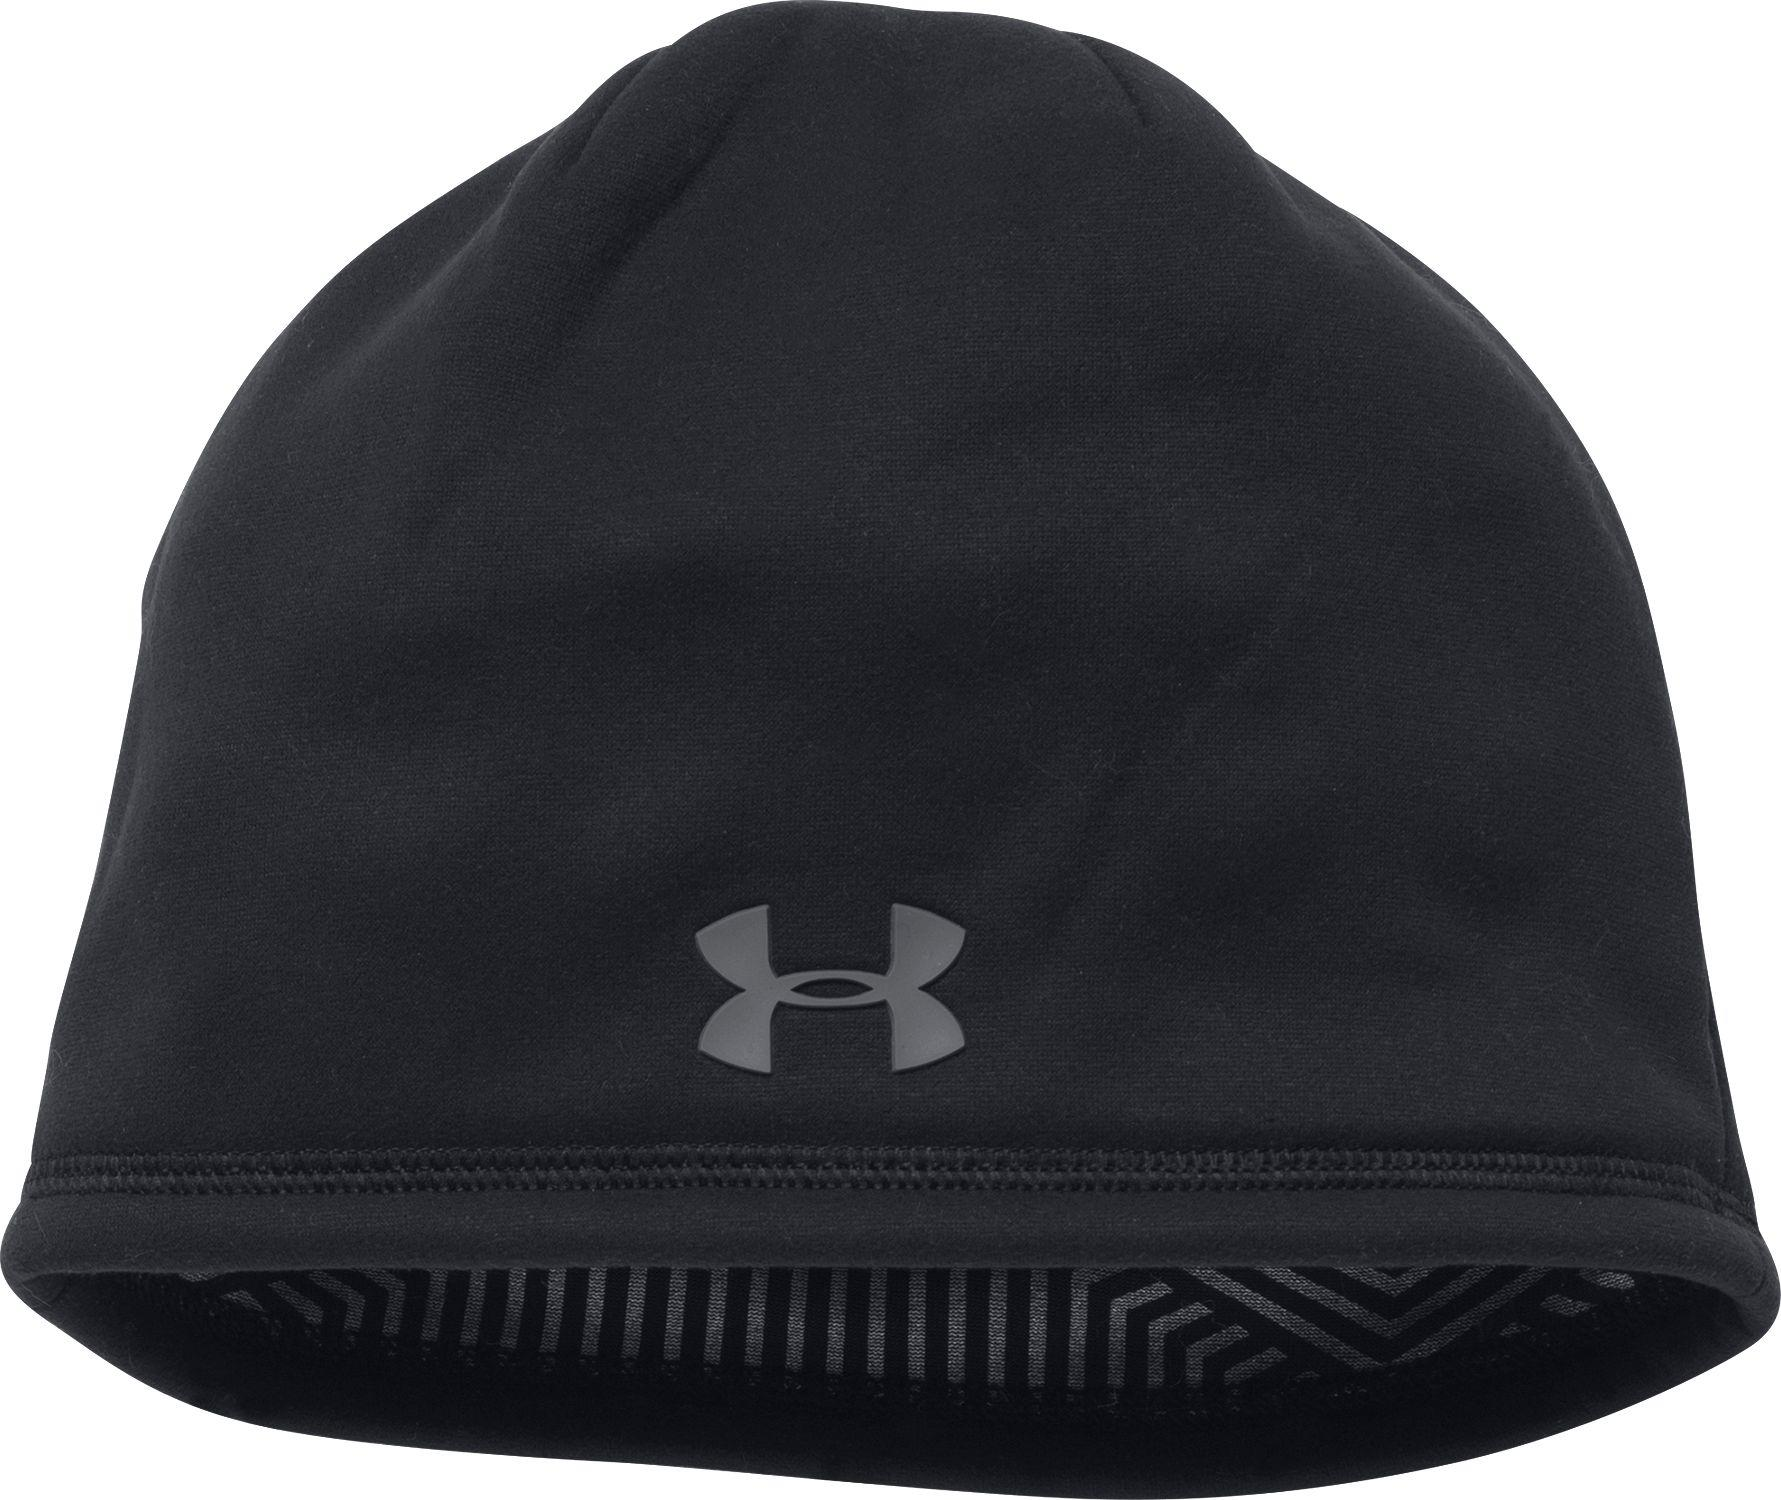 Under Armour - Black Coldgear Infrared Elements Storm 2.0 Beanie for Men -  Lyst e61bff0a963